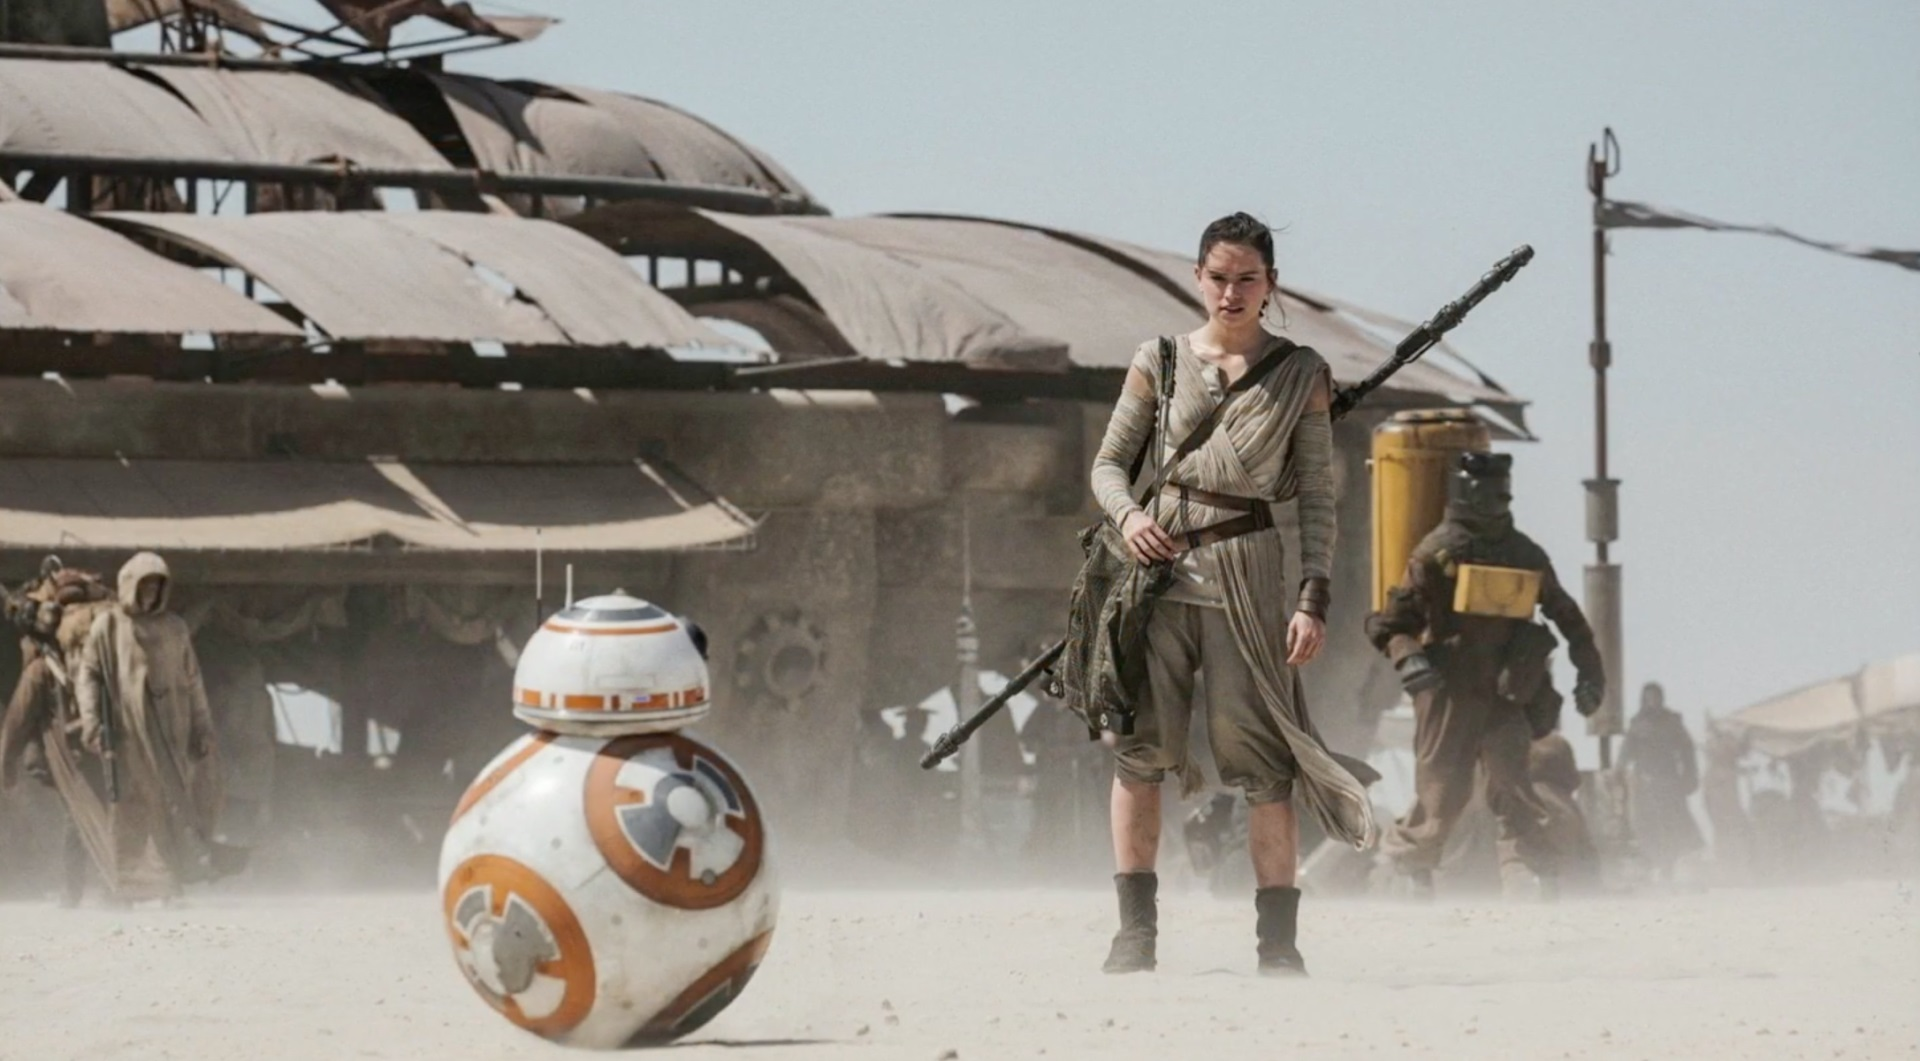 Daisy Ridley as Rey with BB8 in Star Wars Episode VII The Force Awakens (2015)